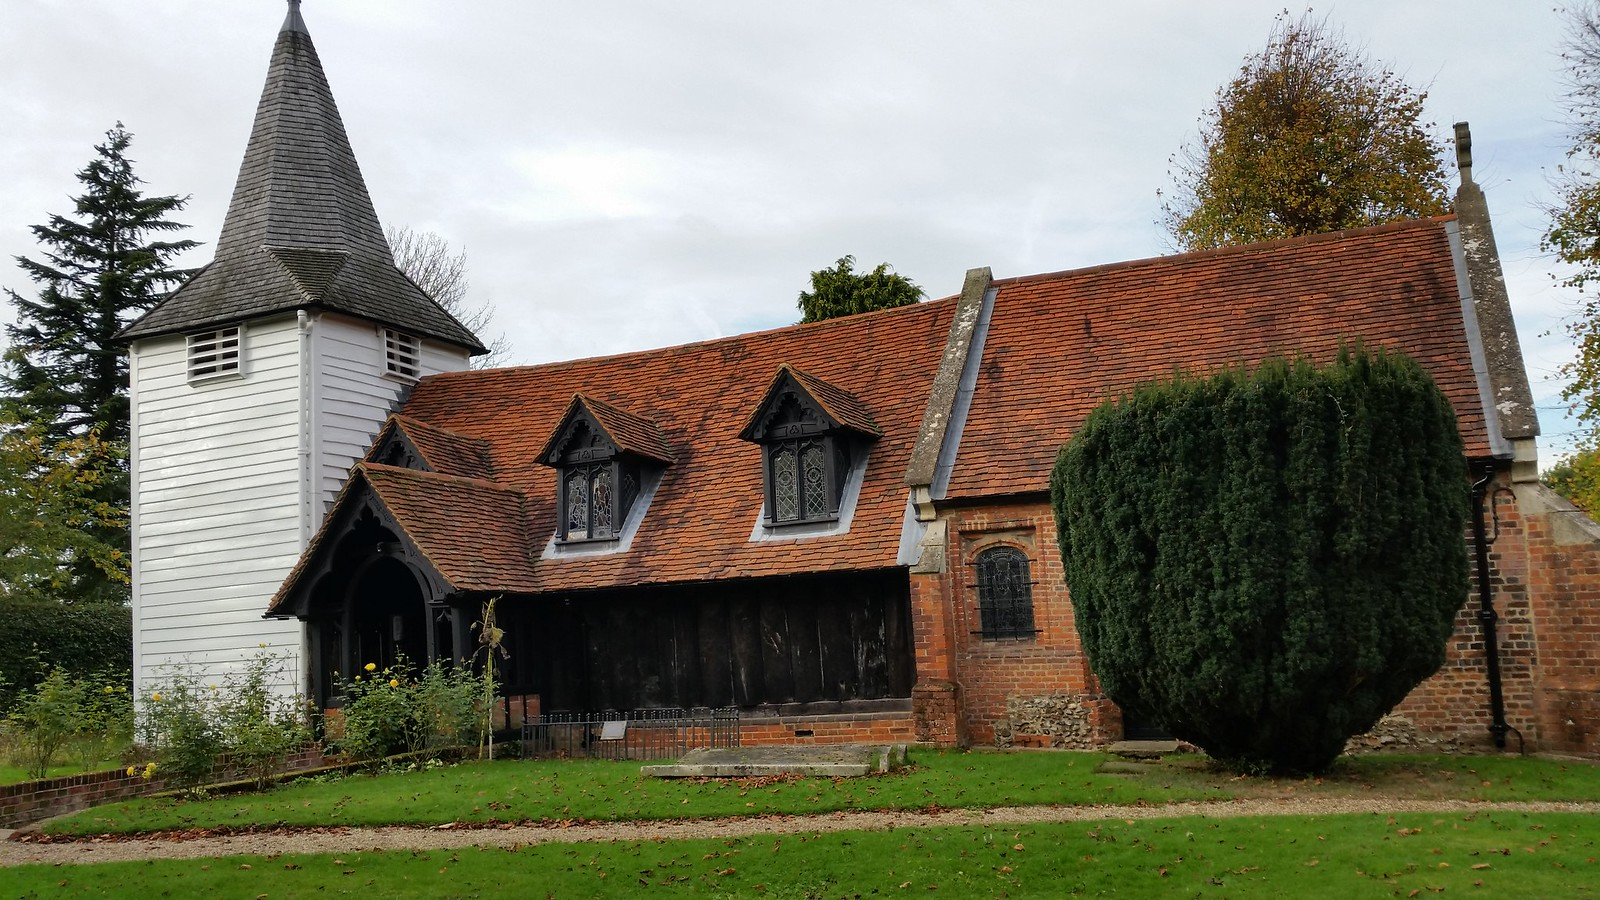 St Andrews Church Greensted, Chipping Ongar